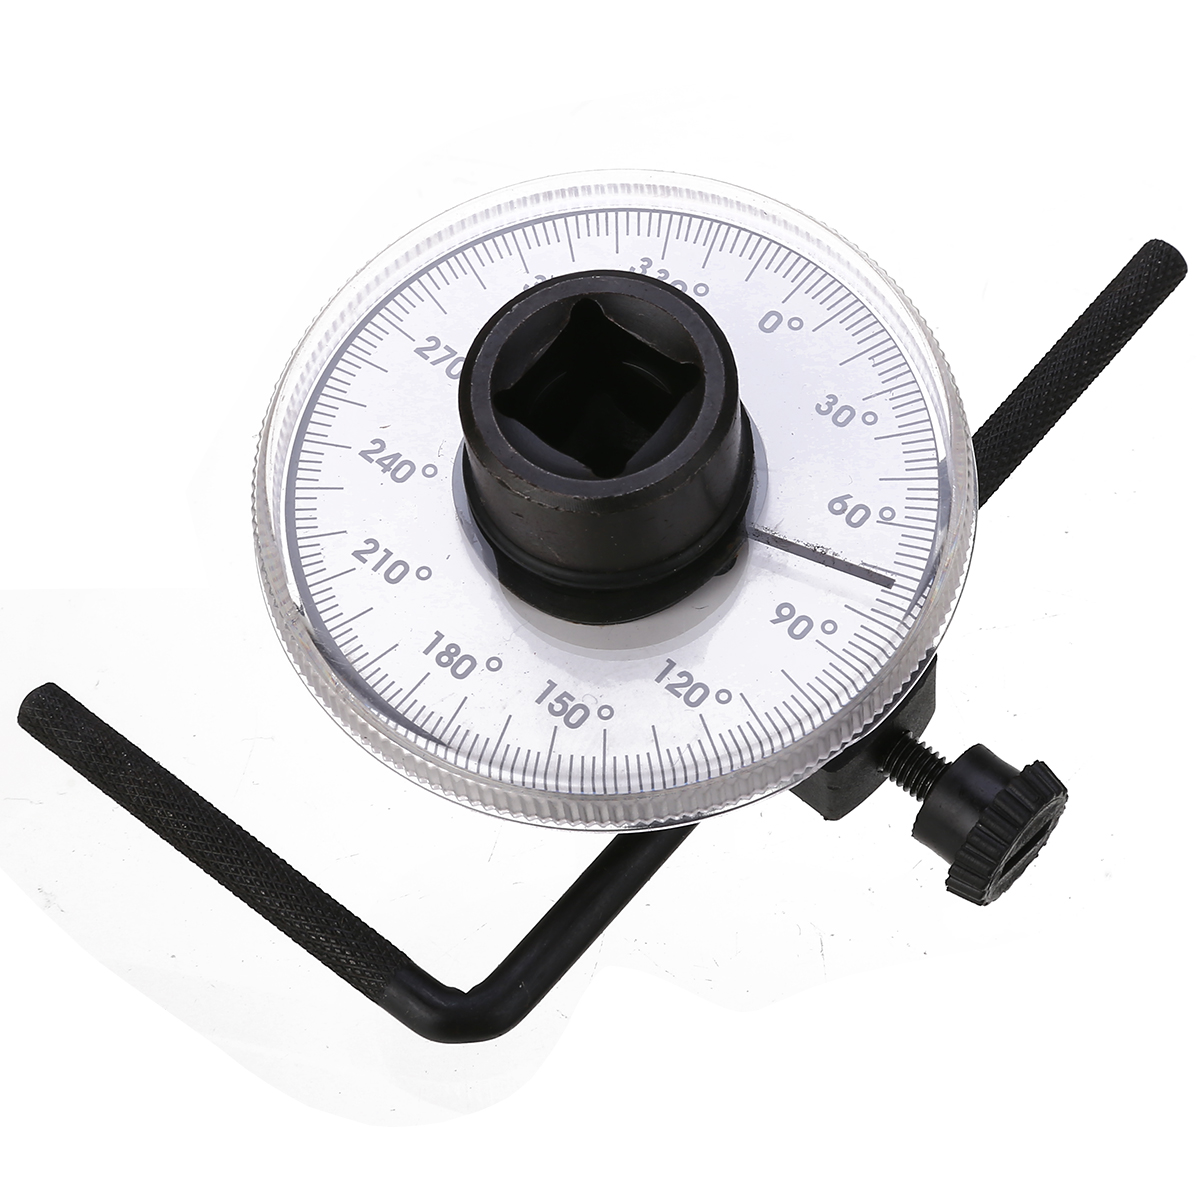 New Arrival 1 Set 1/2 Inch Adjustable Drive Torque Angle Gauge Auto Garage Tool Set For Hand Tools Wrench